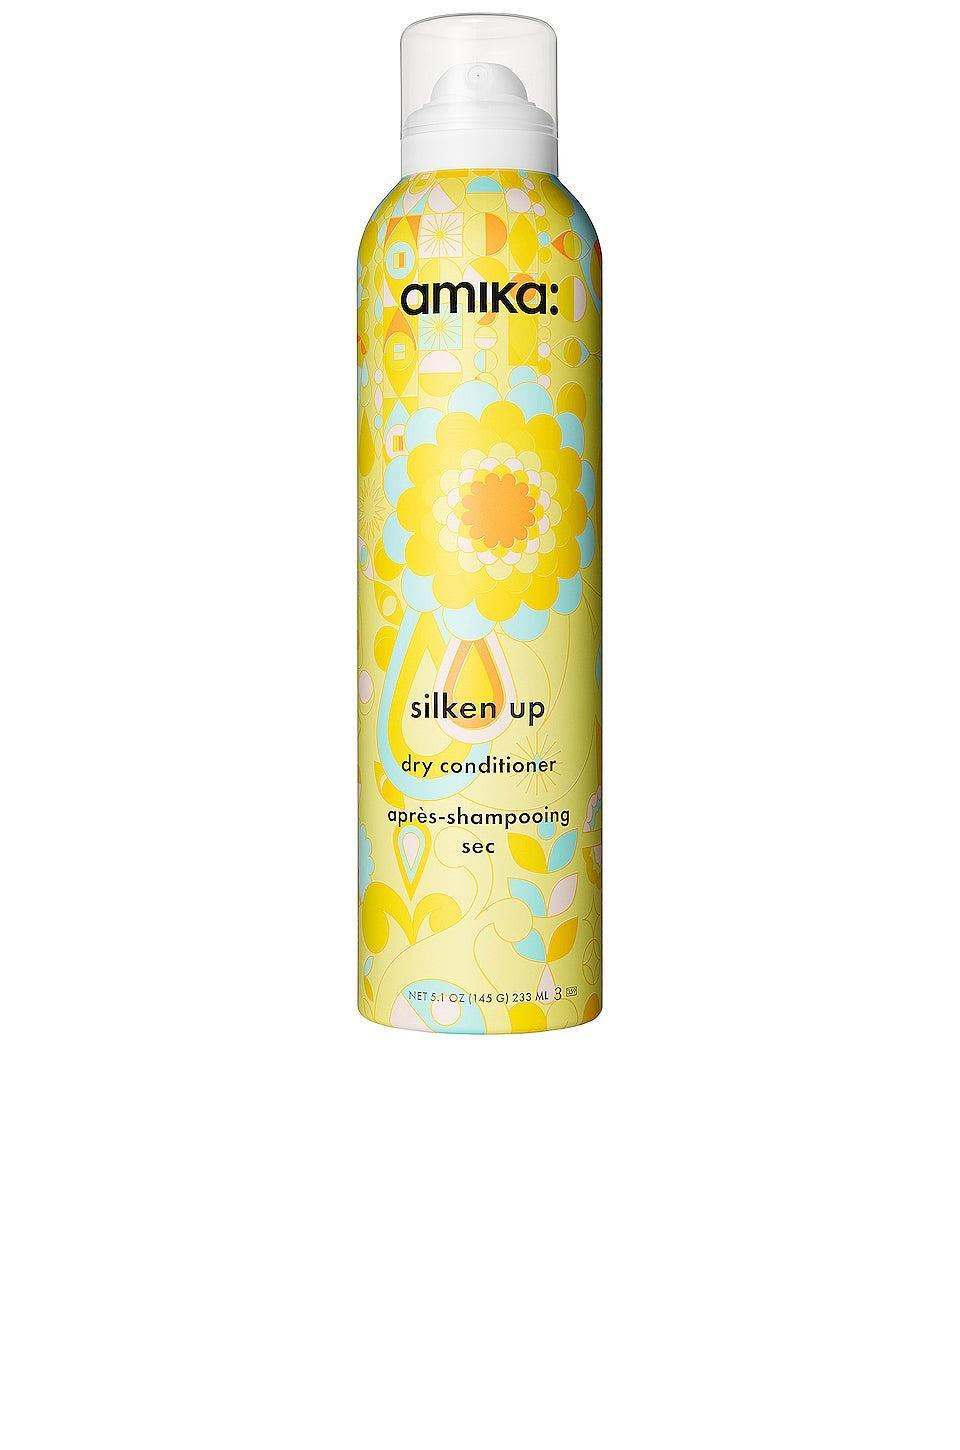 "<h3><strong>Amika</strong> Silken Up Dry Conditioner</h3> <br><strong>For Color-Treated Hair</strong><br><br>Ask any colorist how to best maintain your dye job and they'll just tell you to wash it less. Each wash can fade your color, but that doesn't mean you can't condition your hair between washes. This conditioner can be applied to dry hair to smooth, detangle, and moisturize.<br><br><strong>Amika</strong> Silken Up Dry Conditioner, $, available at <a href=""https://go.skimresources.com/?id=30283X879131&url=https%3A%2F%2Fwww.revolve.com%2Famika-silken-up-dry-conditioner%2Fdp%2FAIKA-WU81%2F"" rel=""nofollow noopener"" target=""_blank"" data-ylk=""slk:Revolve"" class=""link rapid-noclick-resp"">Revolve</a><br><br><br>"